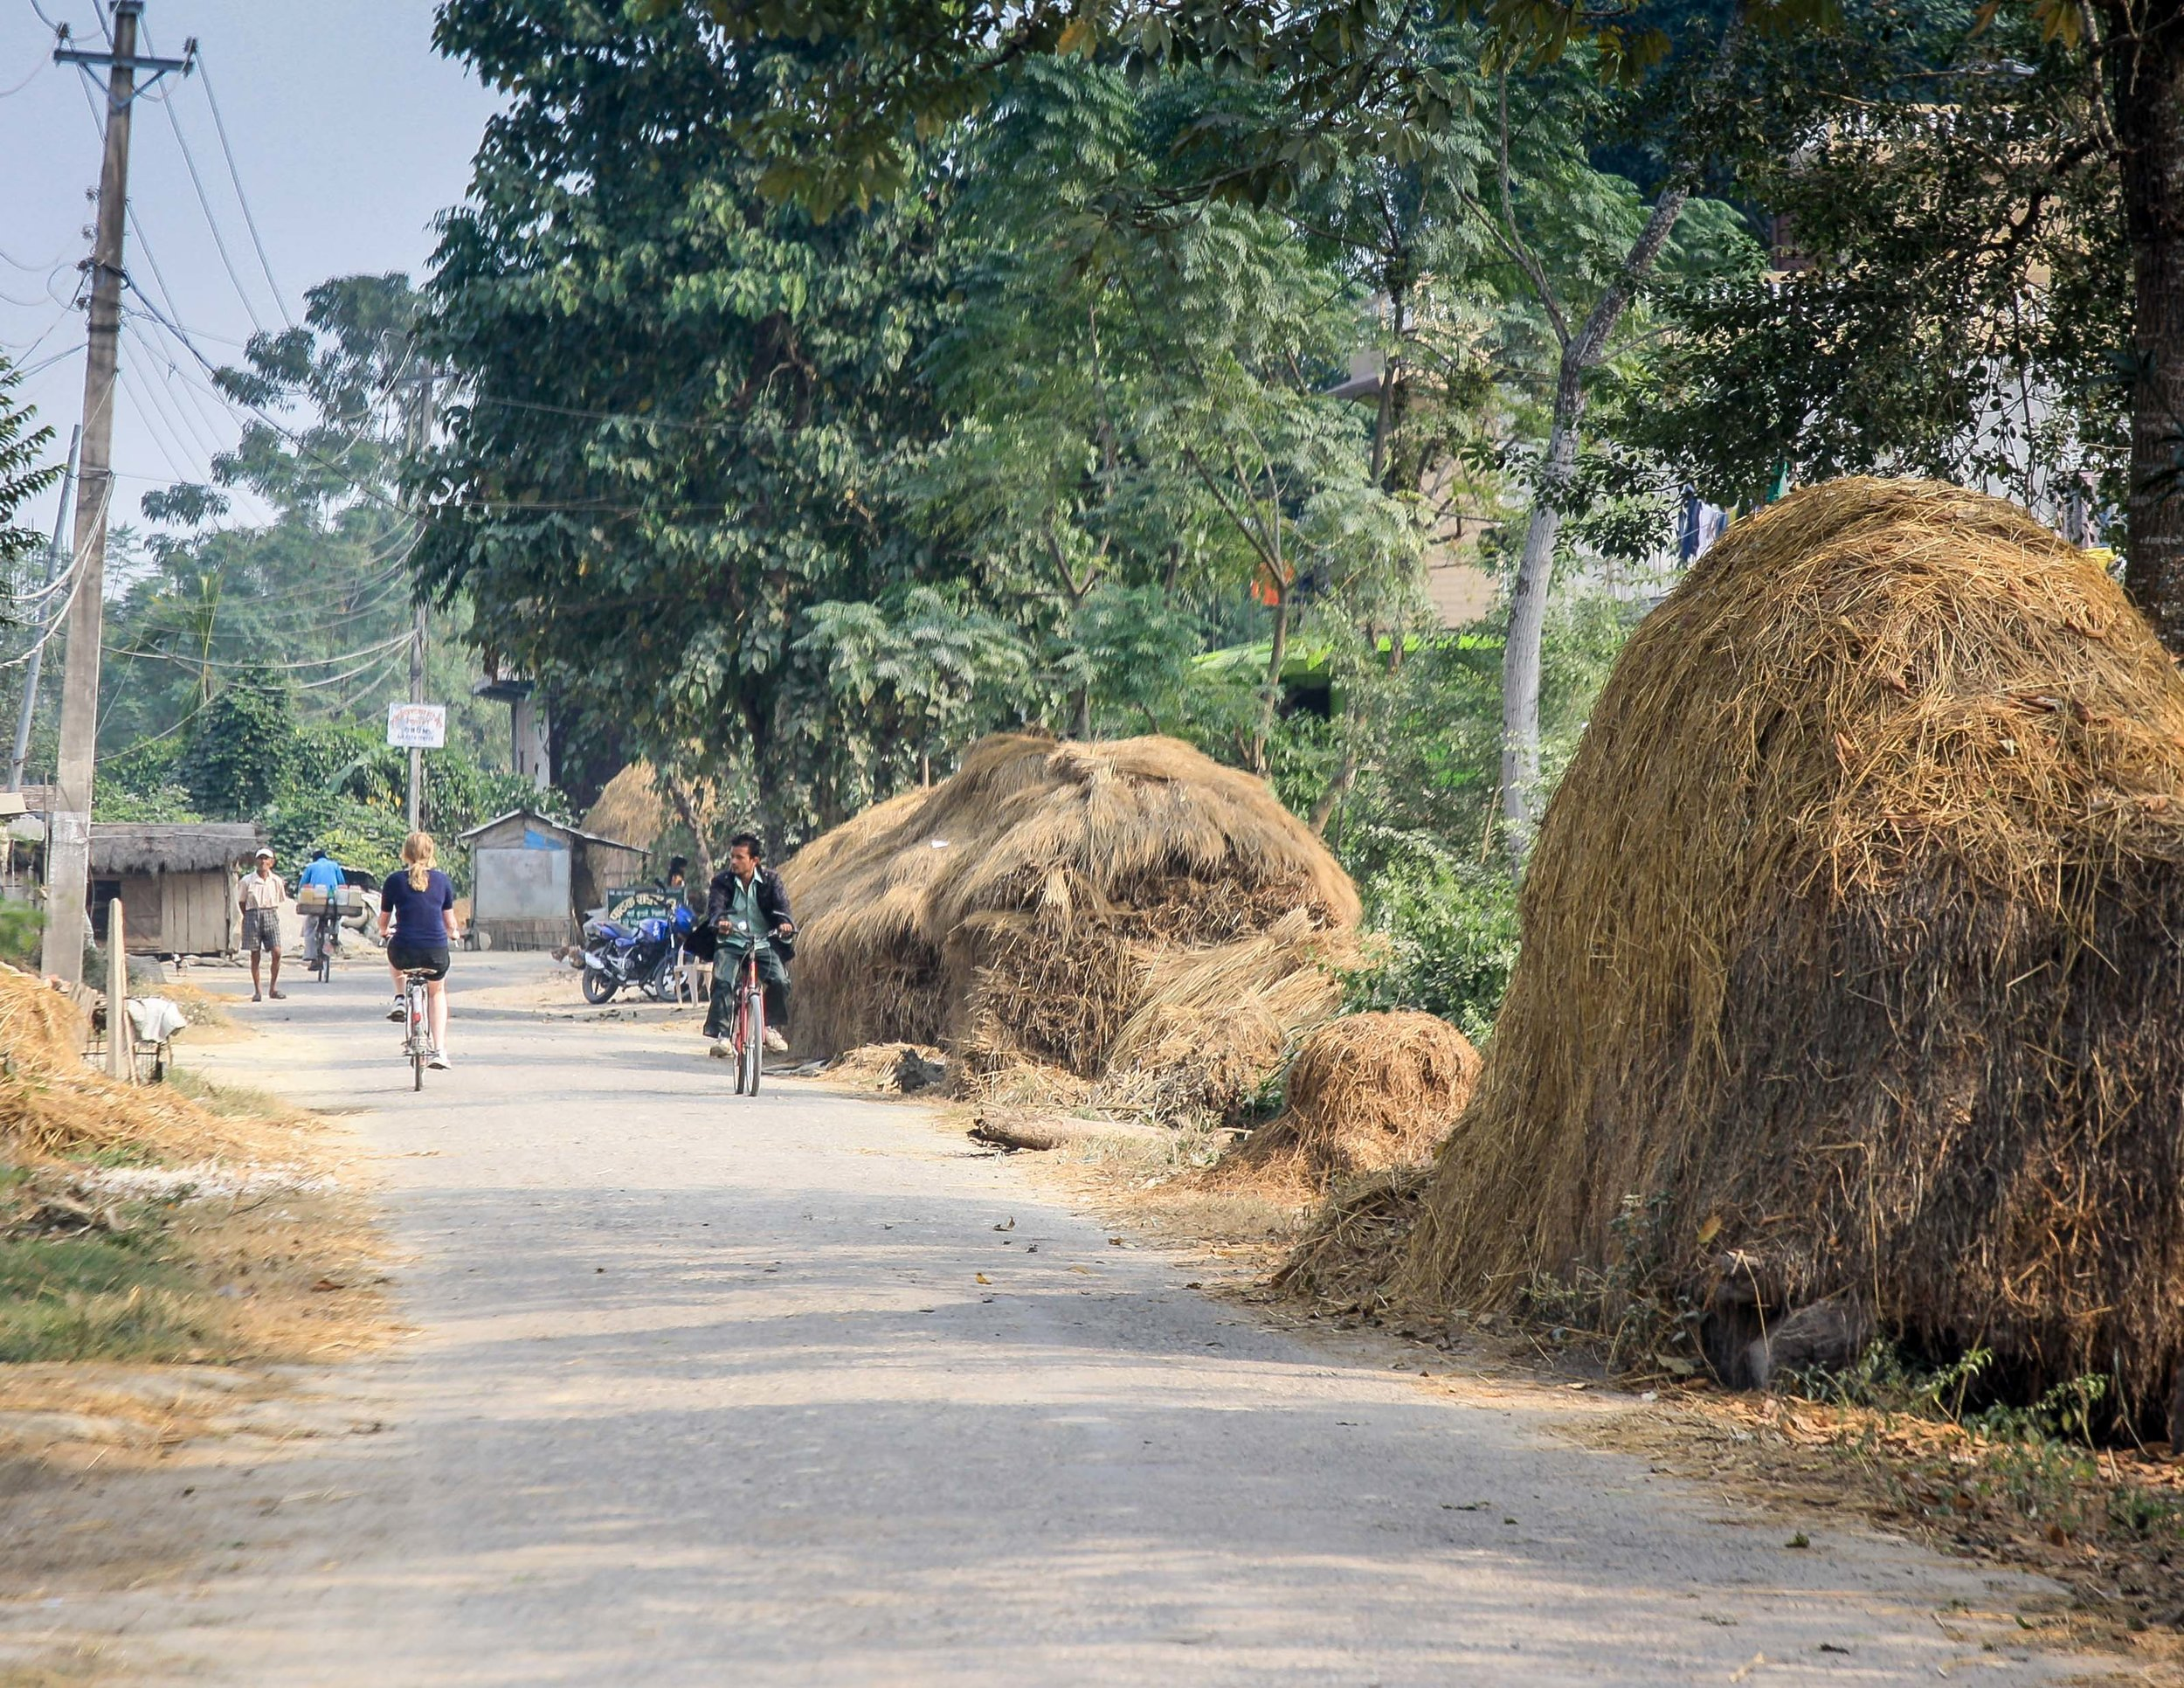 Best things to do in Nepal: cycle round Sarah